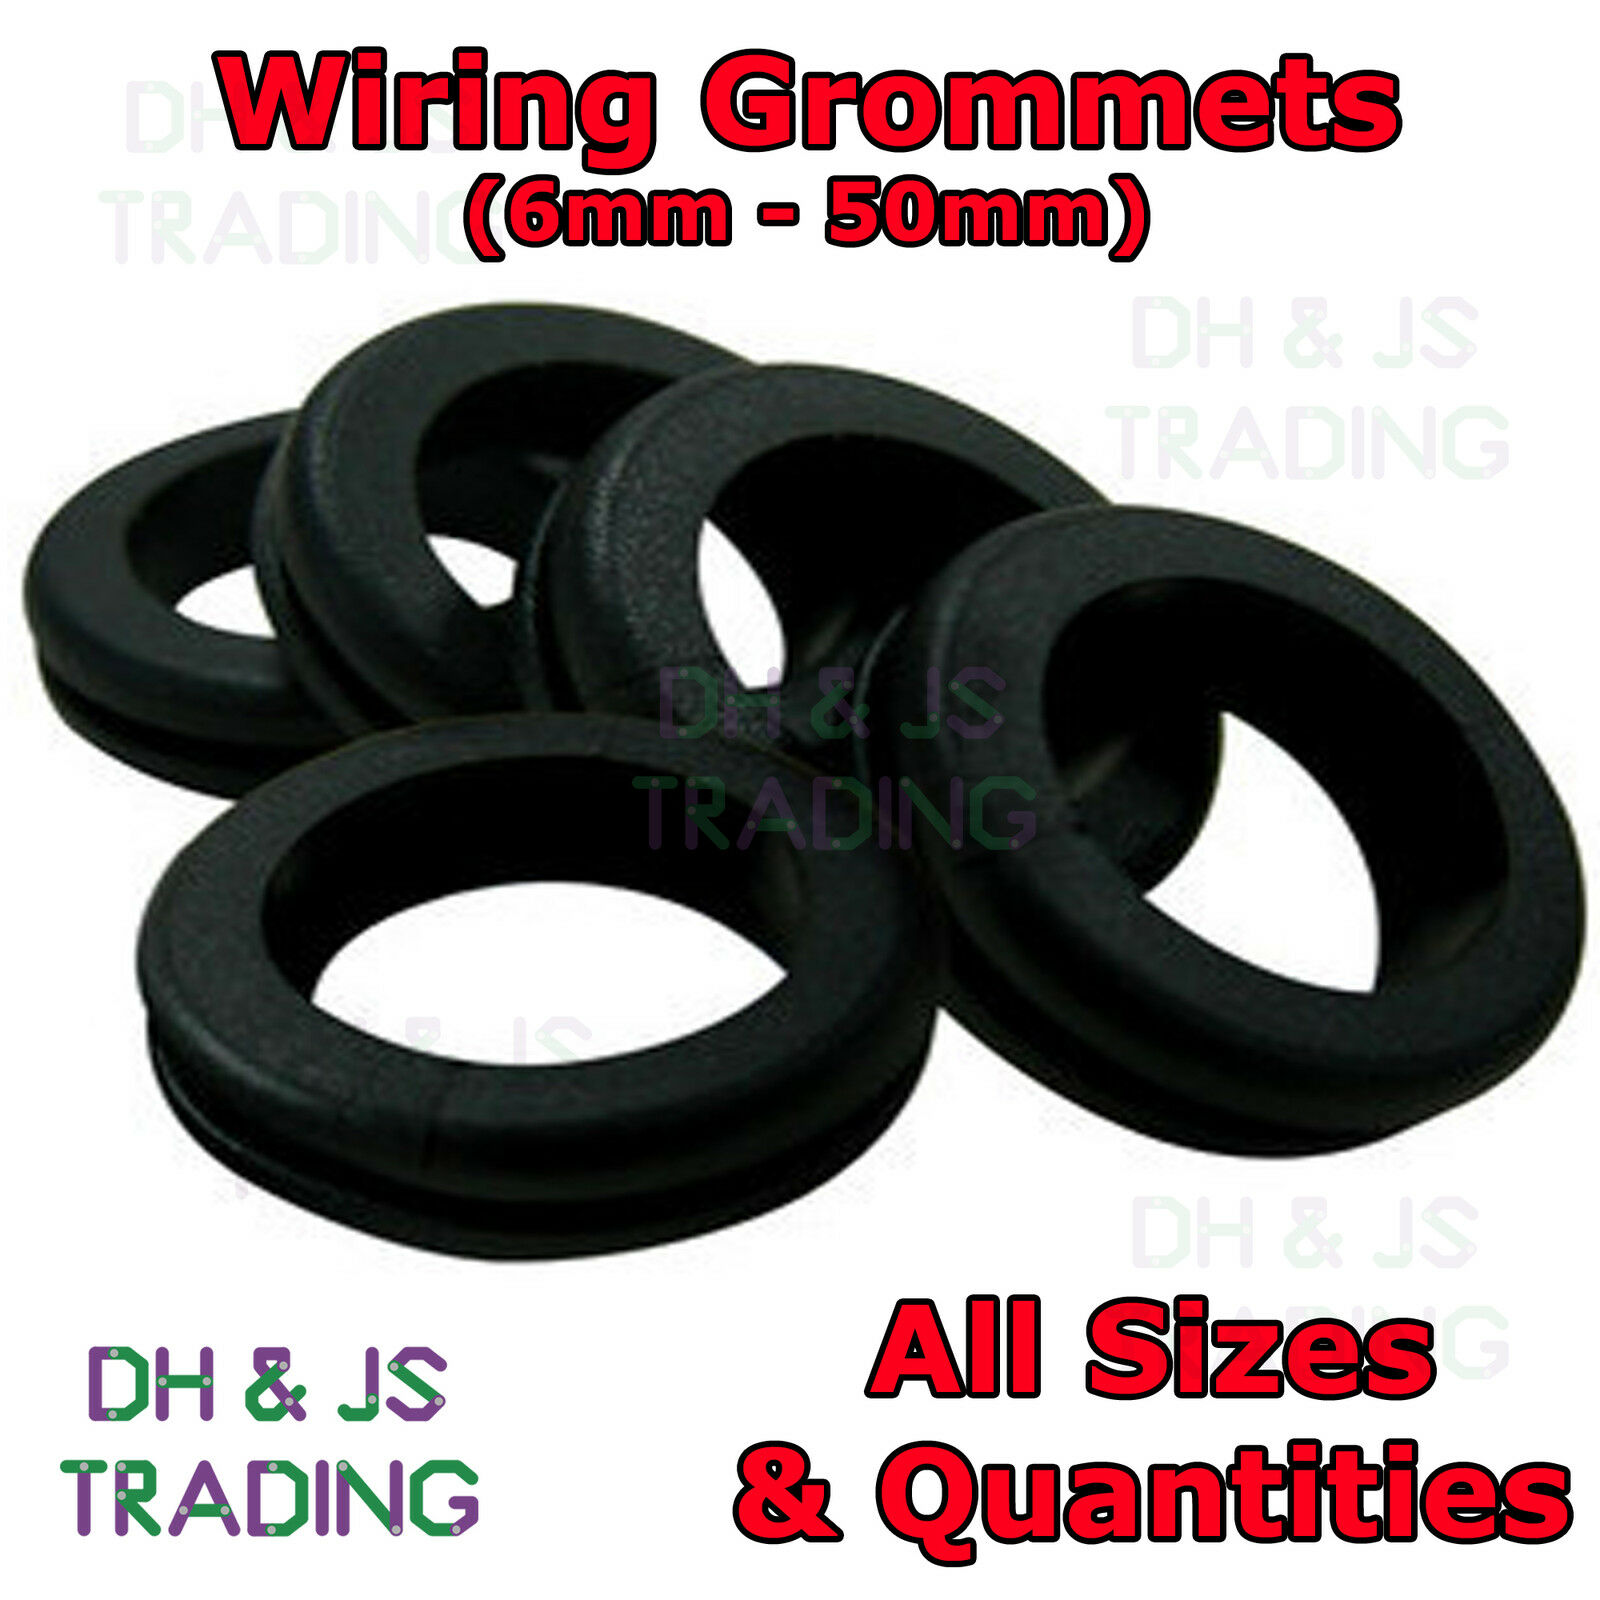 Wiring Grommets Rubber Gromets Open Grommet Cable Loom All Car Harness Bulkhead Sizes 1 Of 1free Shipping See More